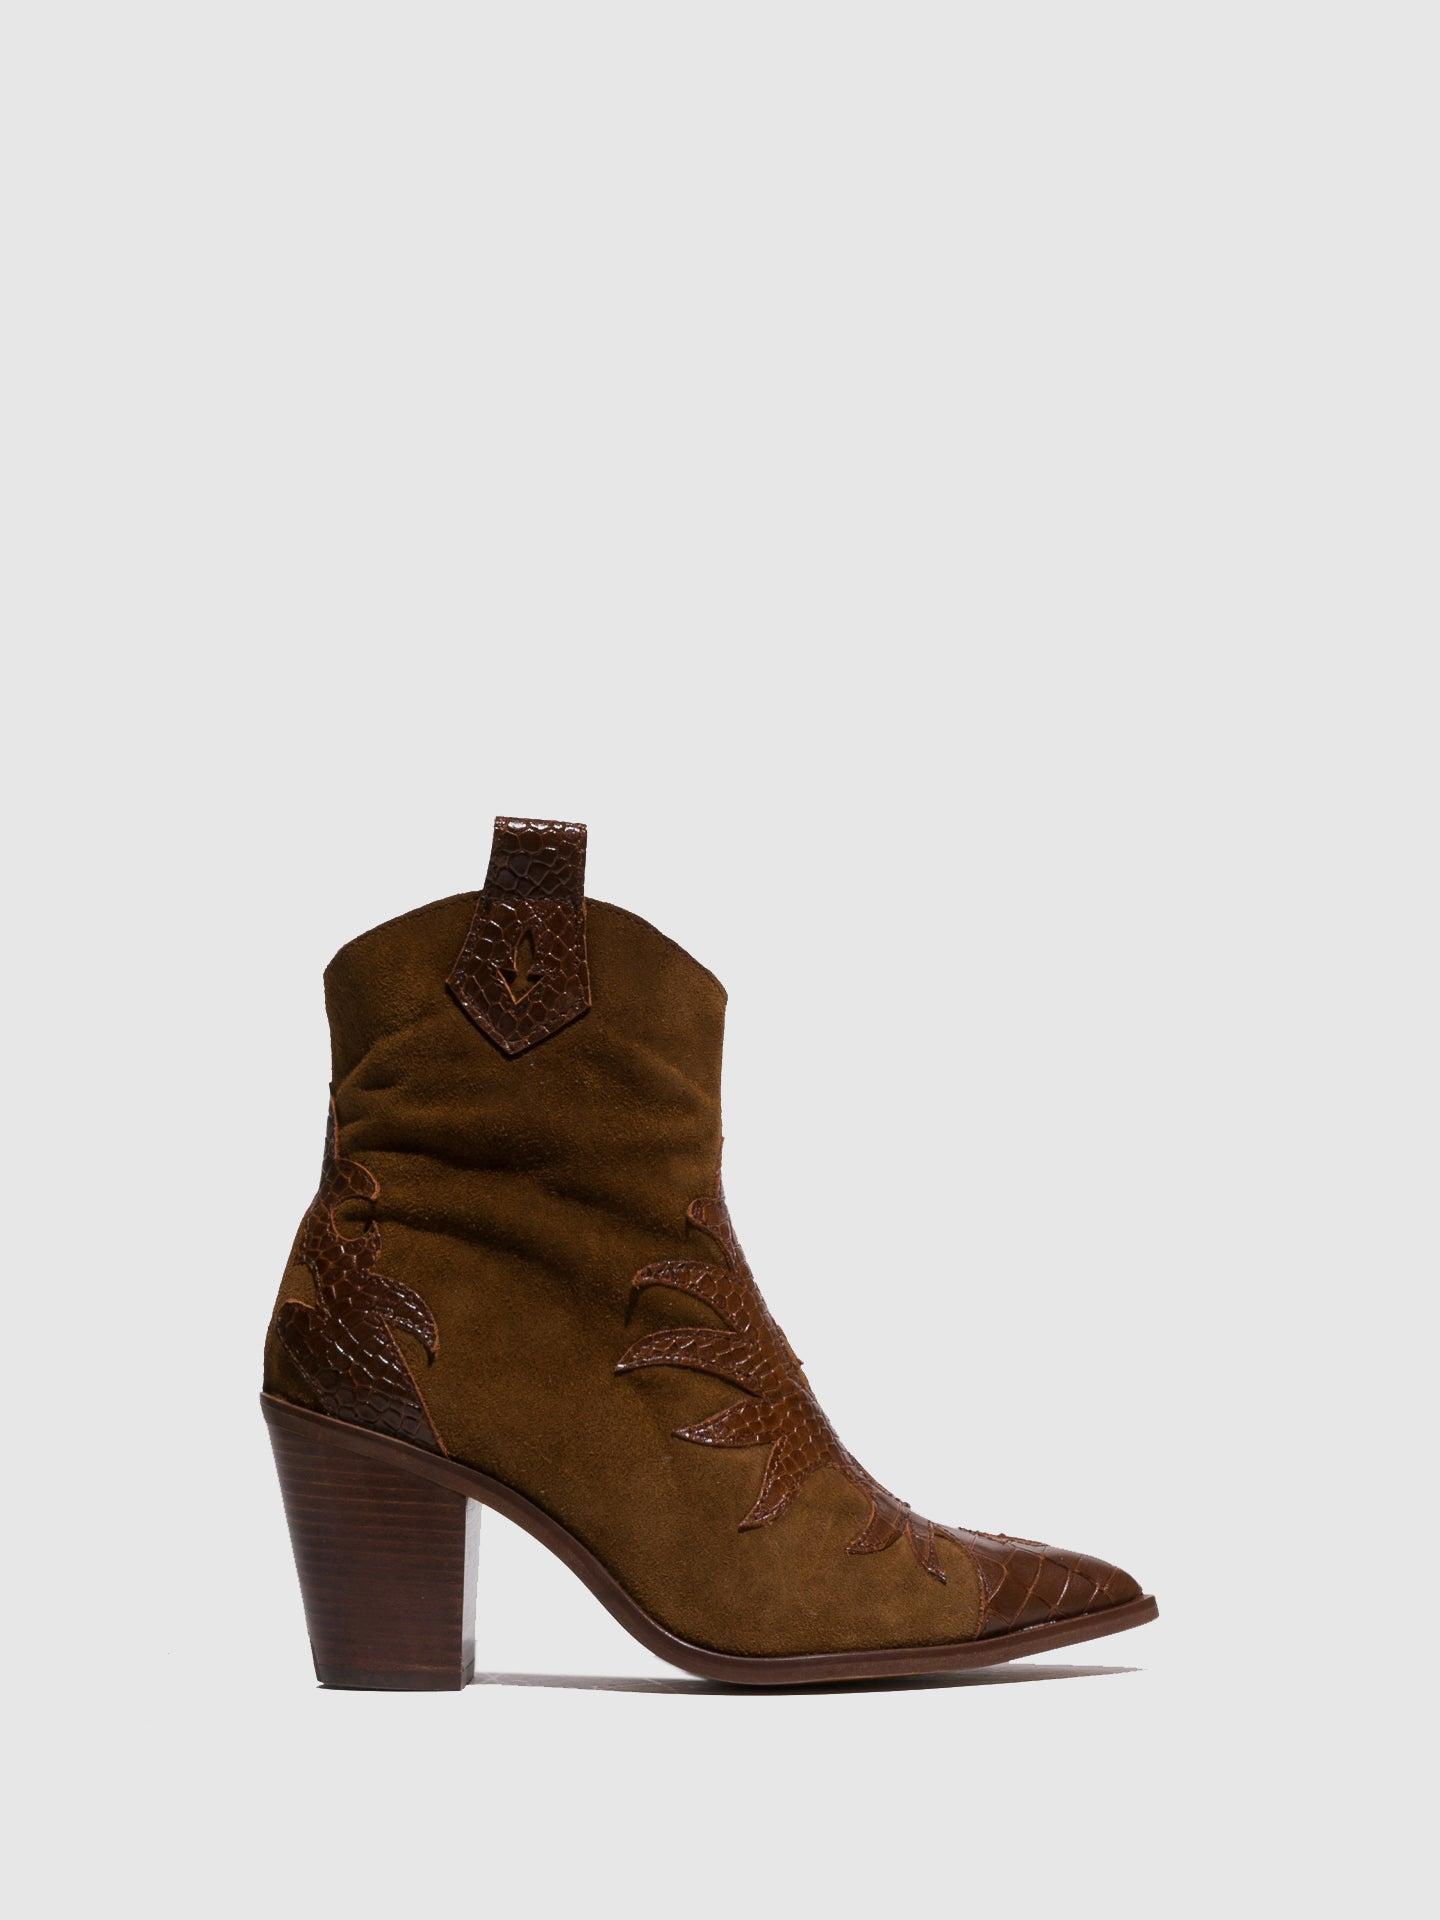 Foreva Brown Pointed Toe Ankle Boots